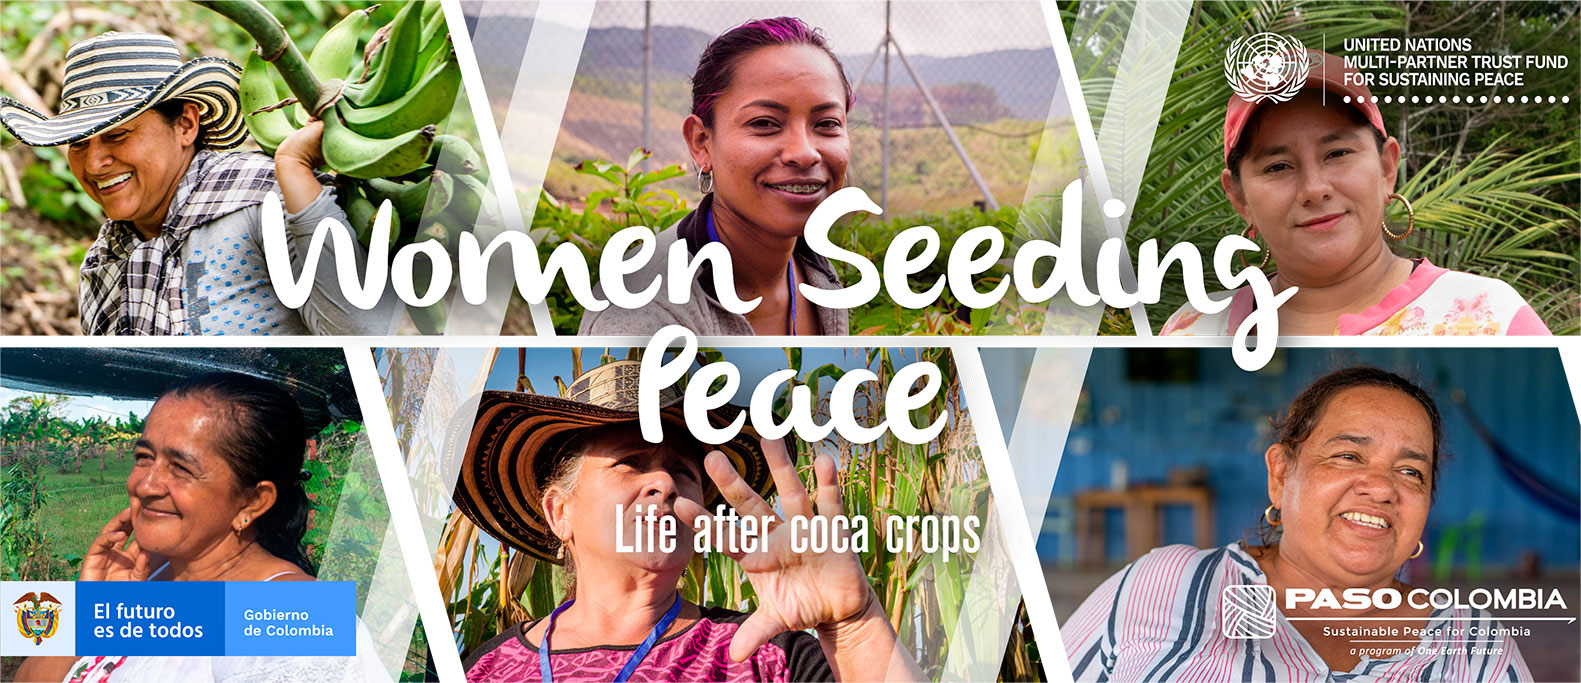 Women seeding peace